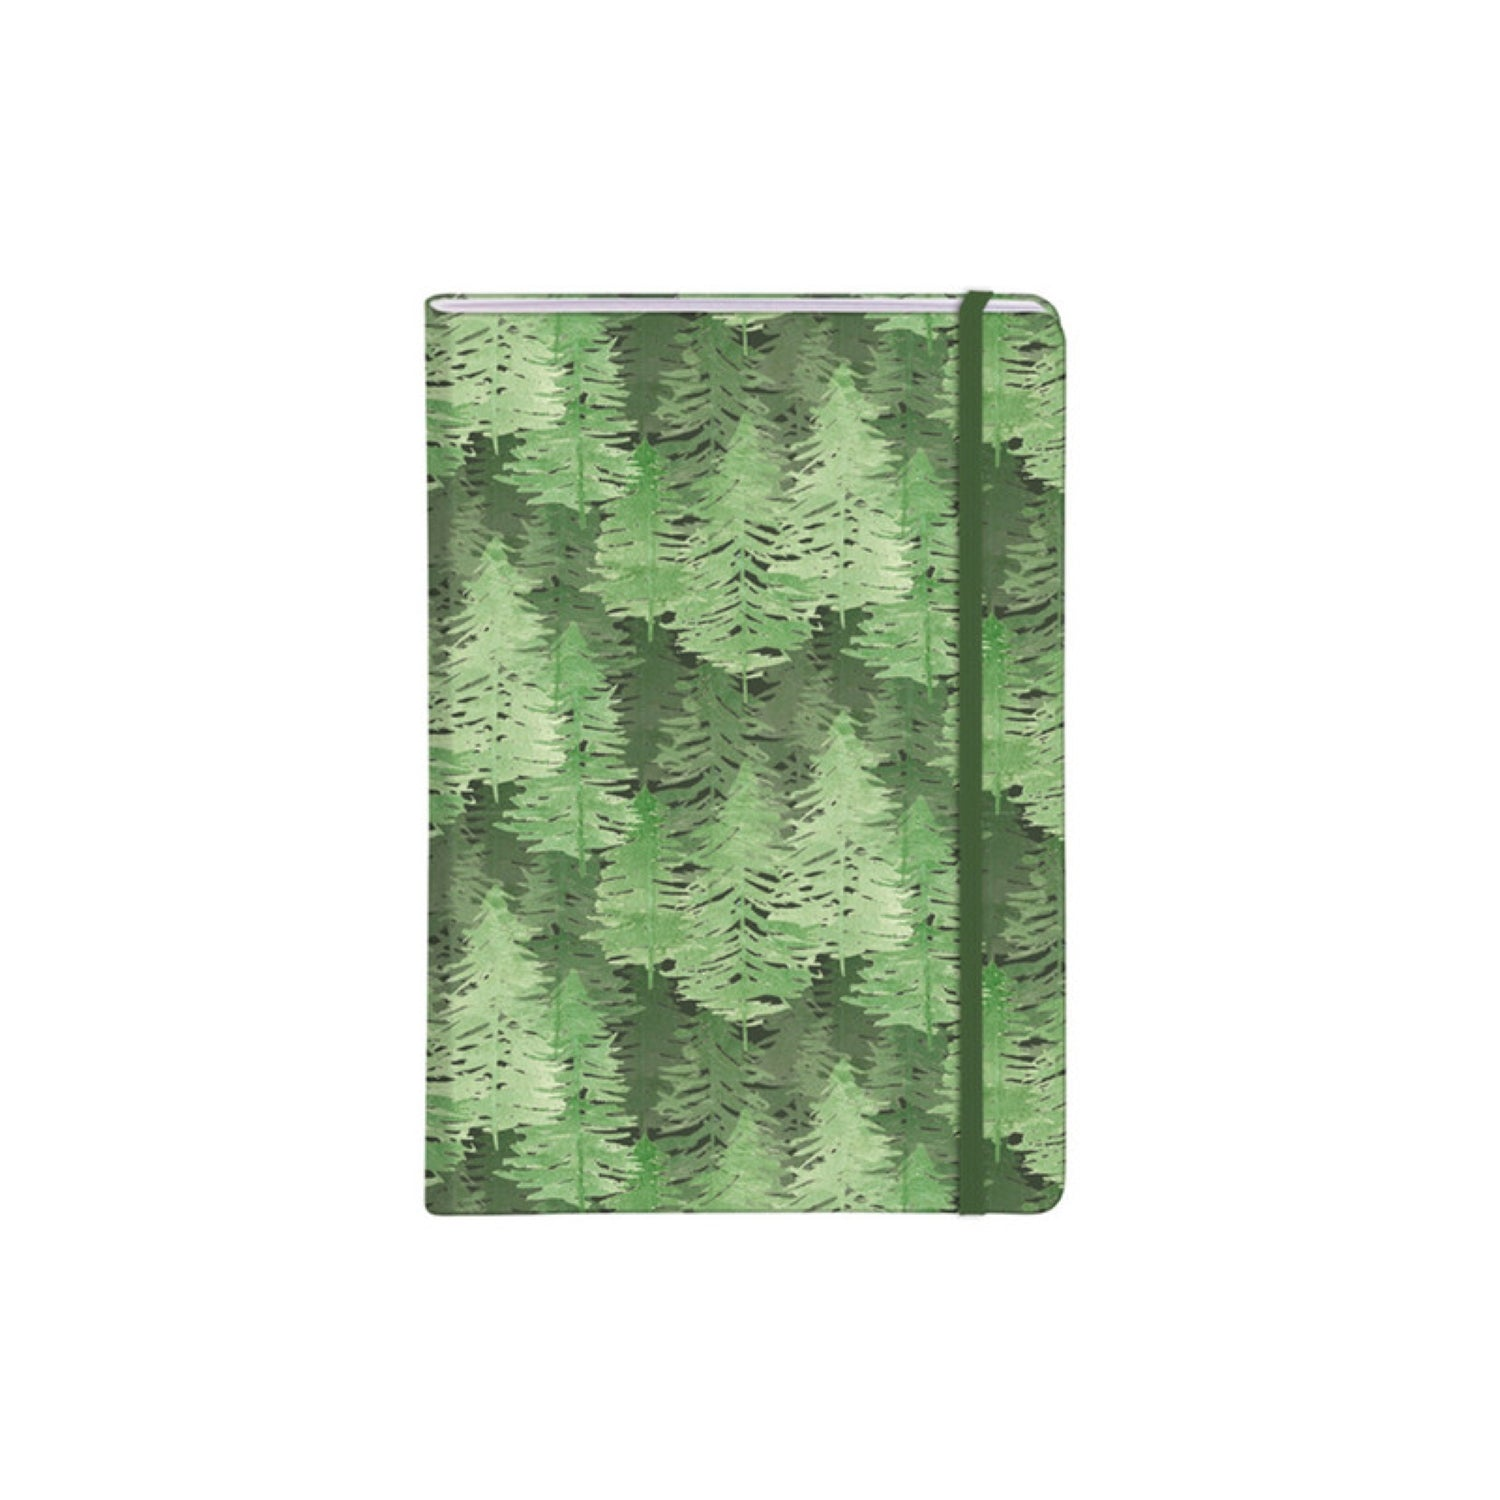 Clairefontaine La Vie en Vosges Collection Notebook Hardcover A5 Ruled - Forest